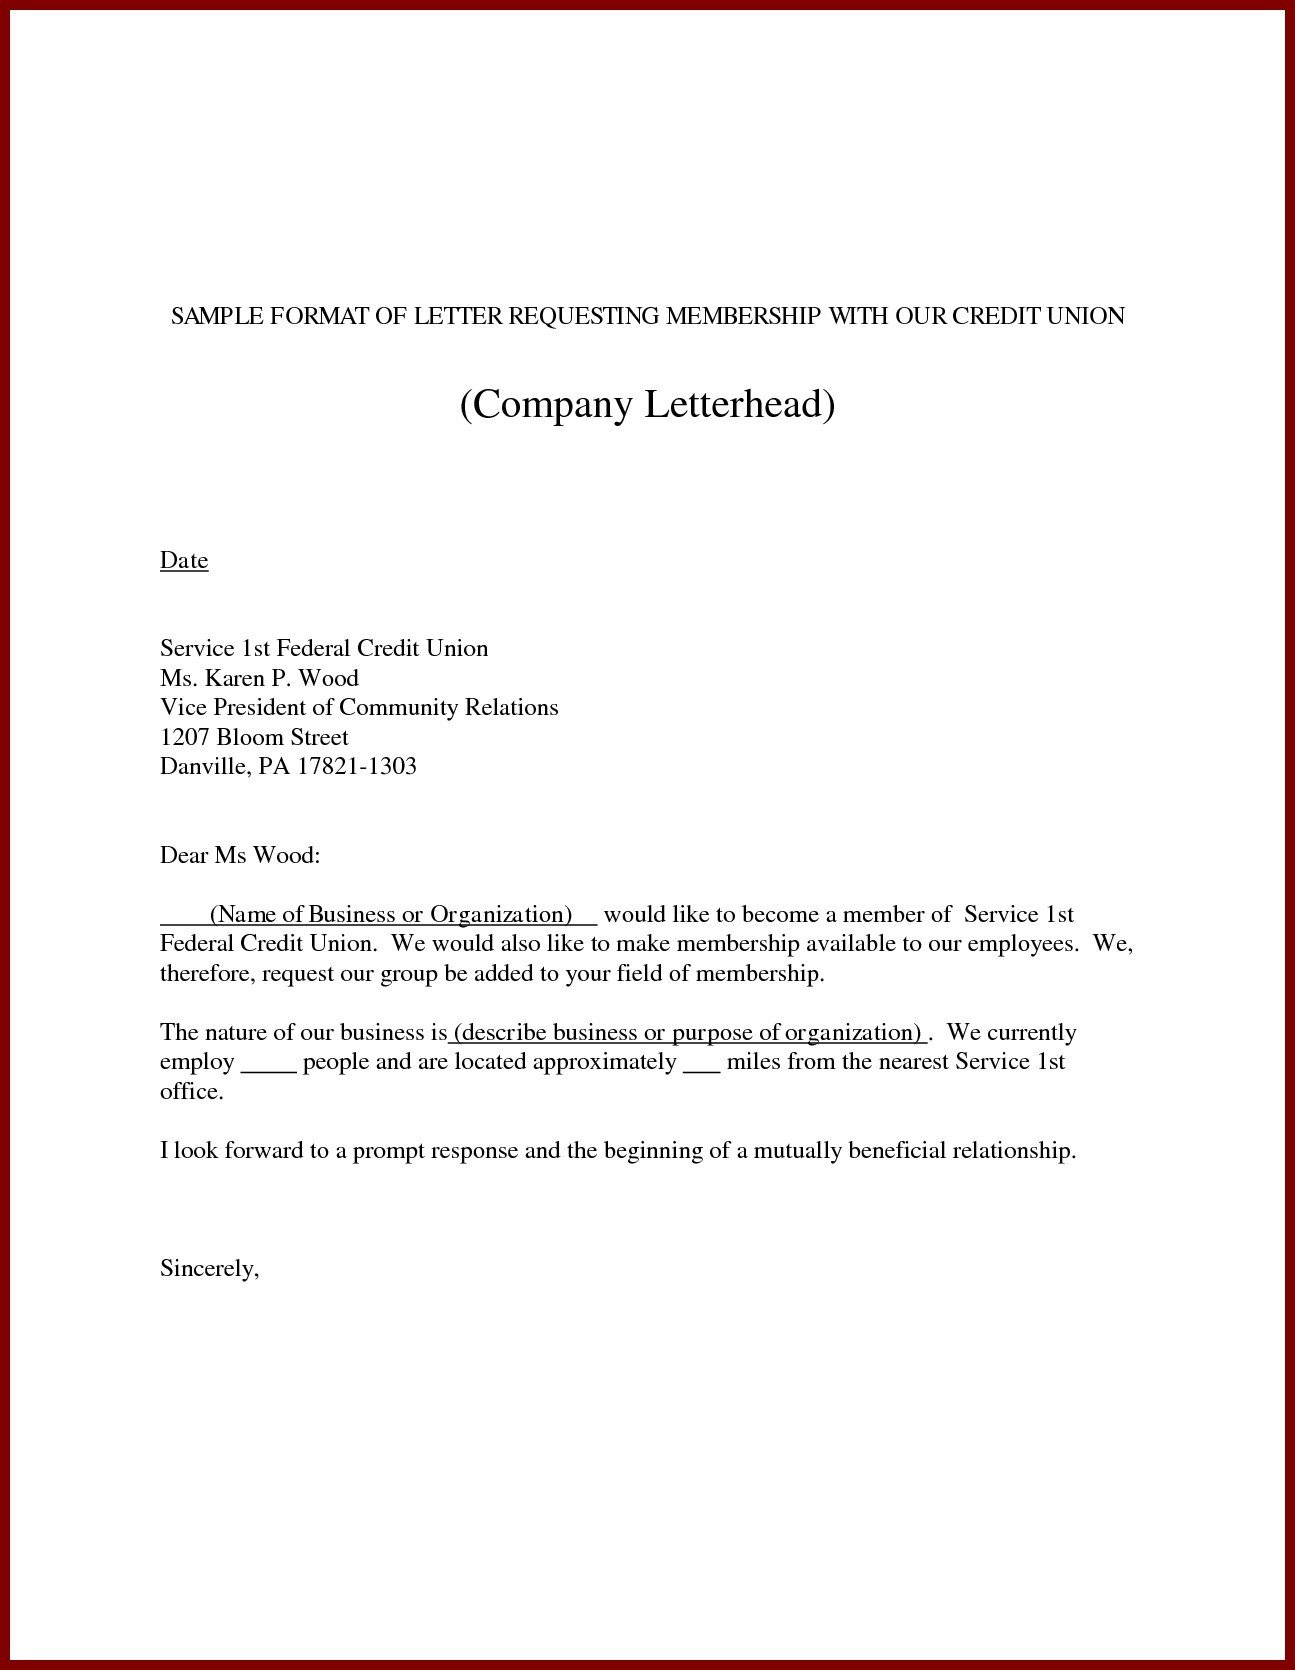 Certificate Of Insurance Request Letter Template - Certificate Insurance Request Letter Template Surprising Apology